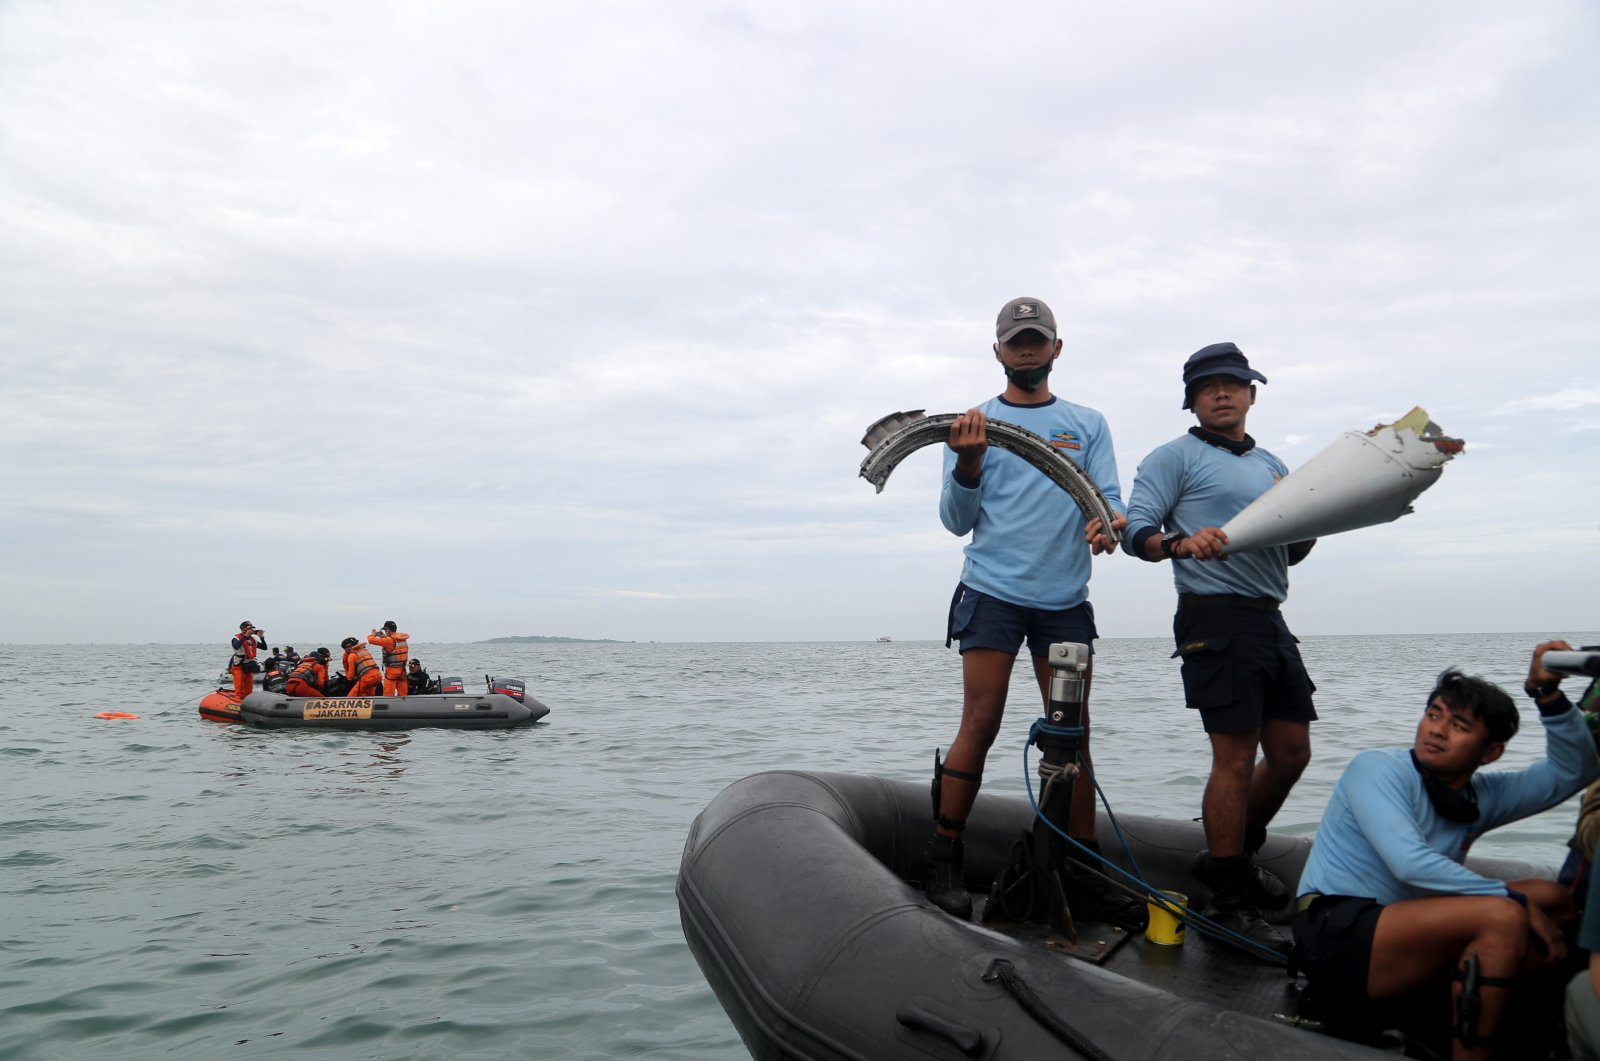 Indonesian Navy divers remove debris from the water during a search and rescue operation near the suspected crash site of Sriwijaya Air flight SJ182, near Tanjung Priok port in Jakarta, Indonesia, Jan. 10, 2021. (EPA Photo)